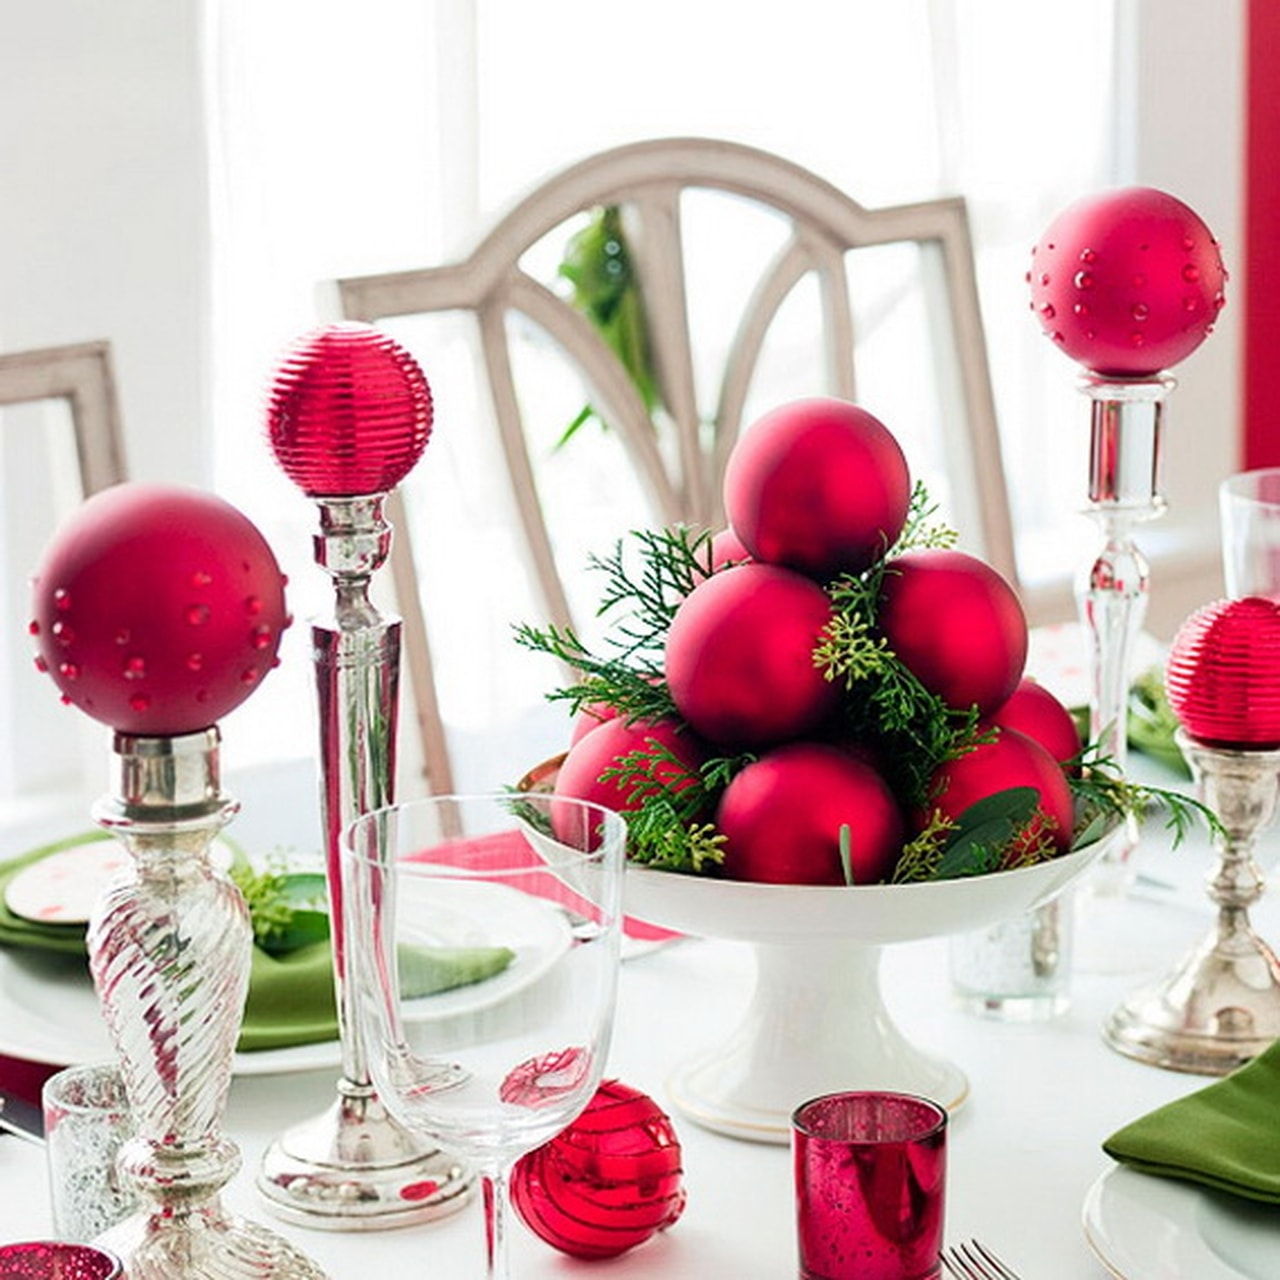 #C10A39 50 Best DIY Christmas Table Decoration Ideas For 2016 5271 decoration table noel mauve 1280x1280 px @ aertt.com